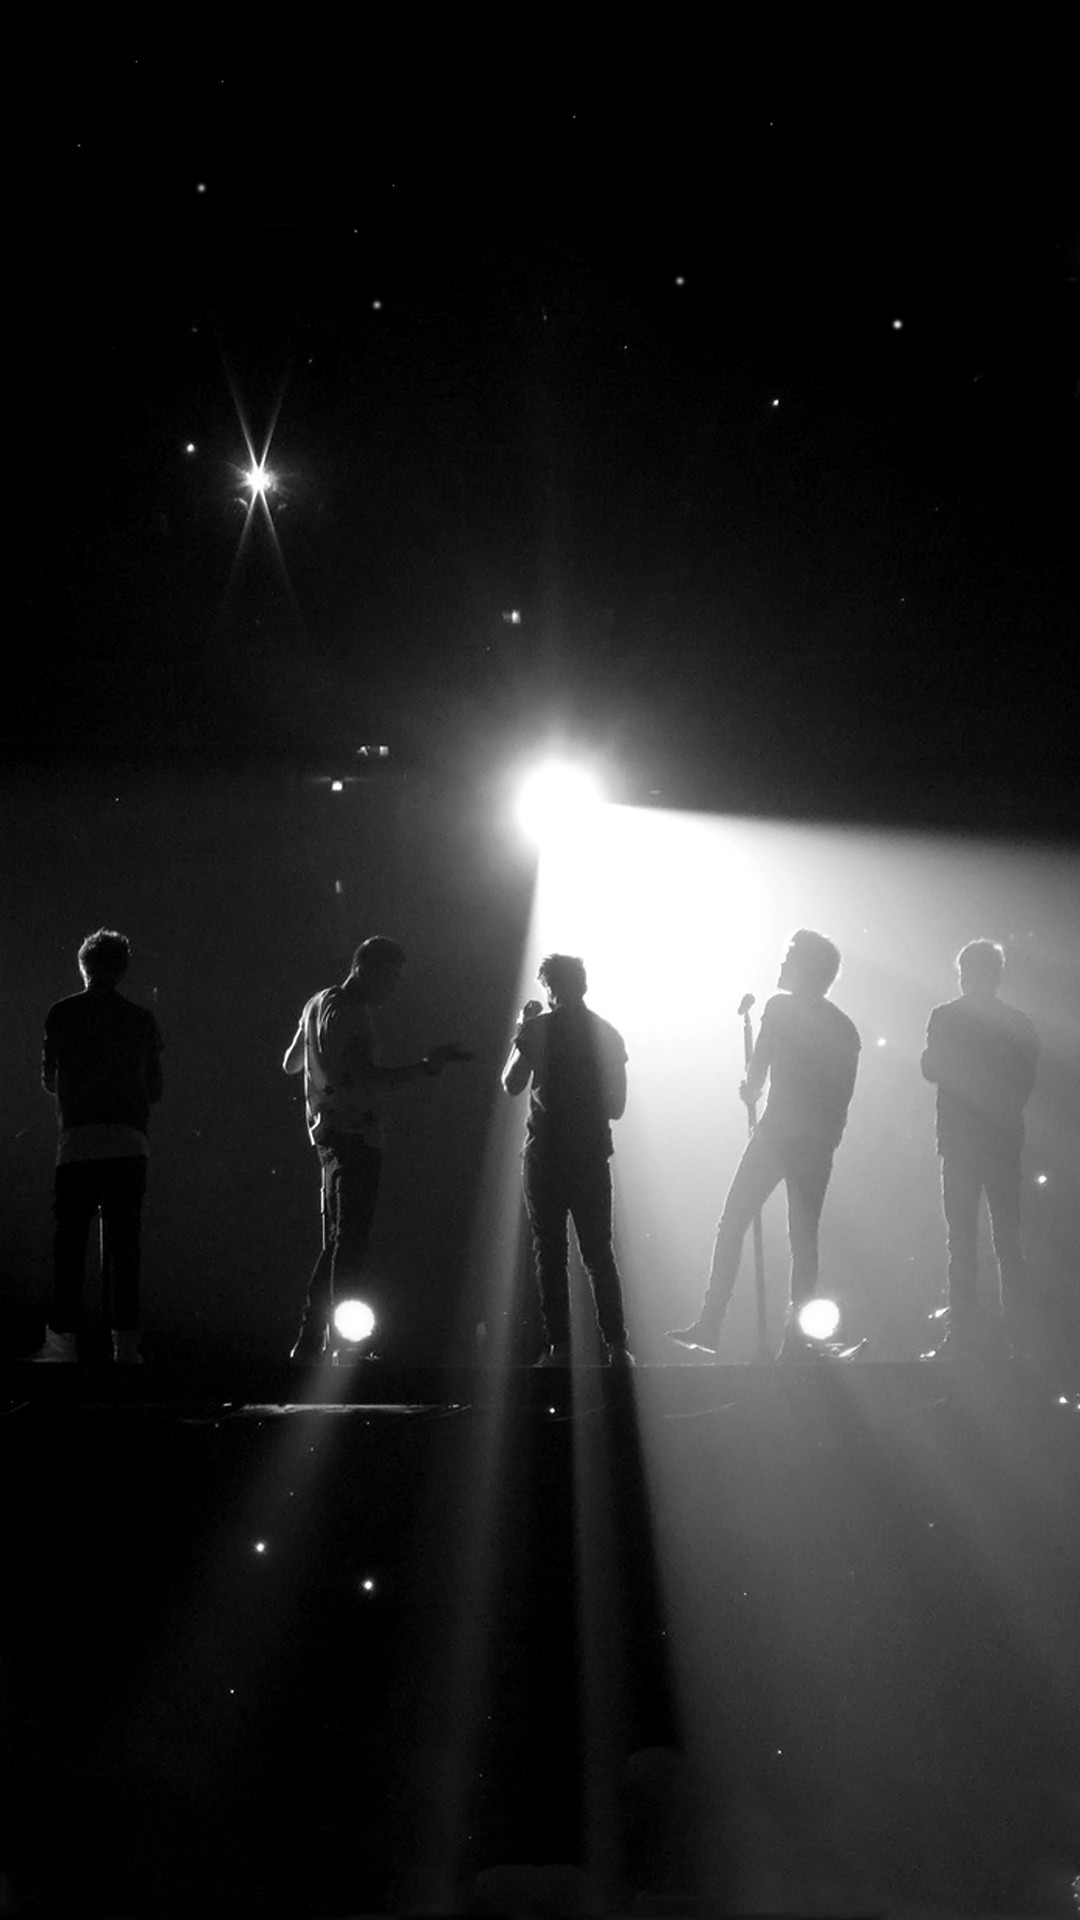 One Direction wallpaper for mobile phones … – One Direction .